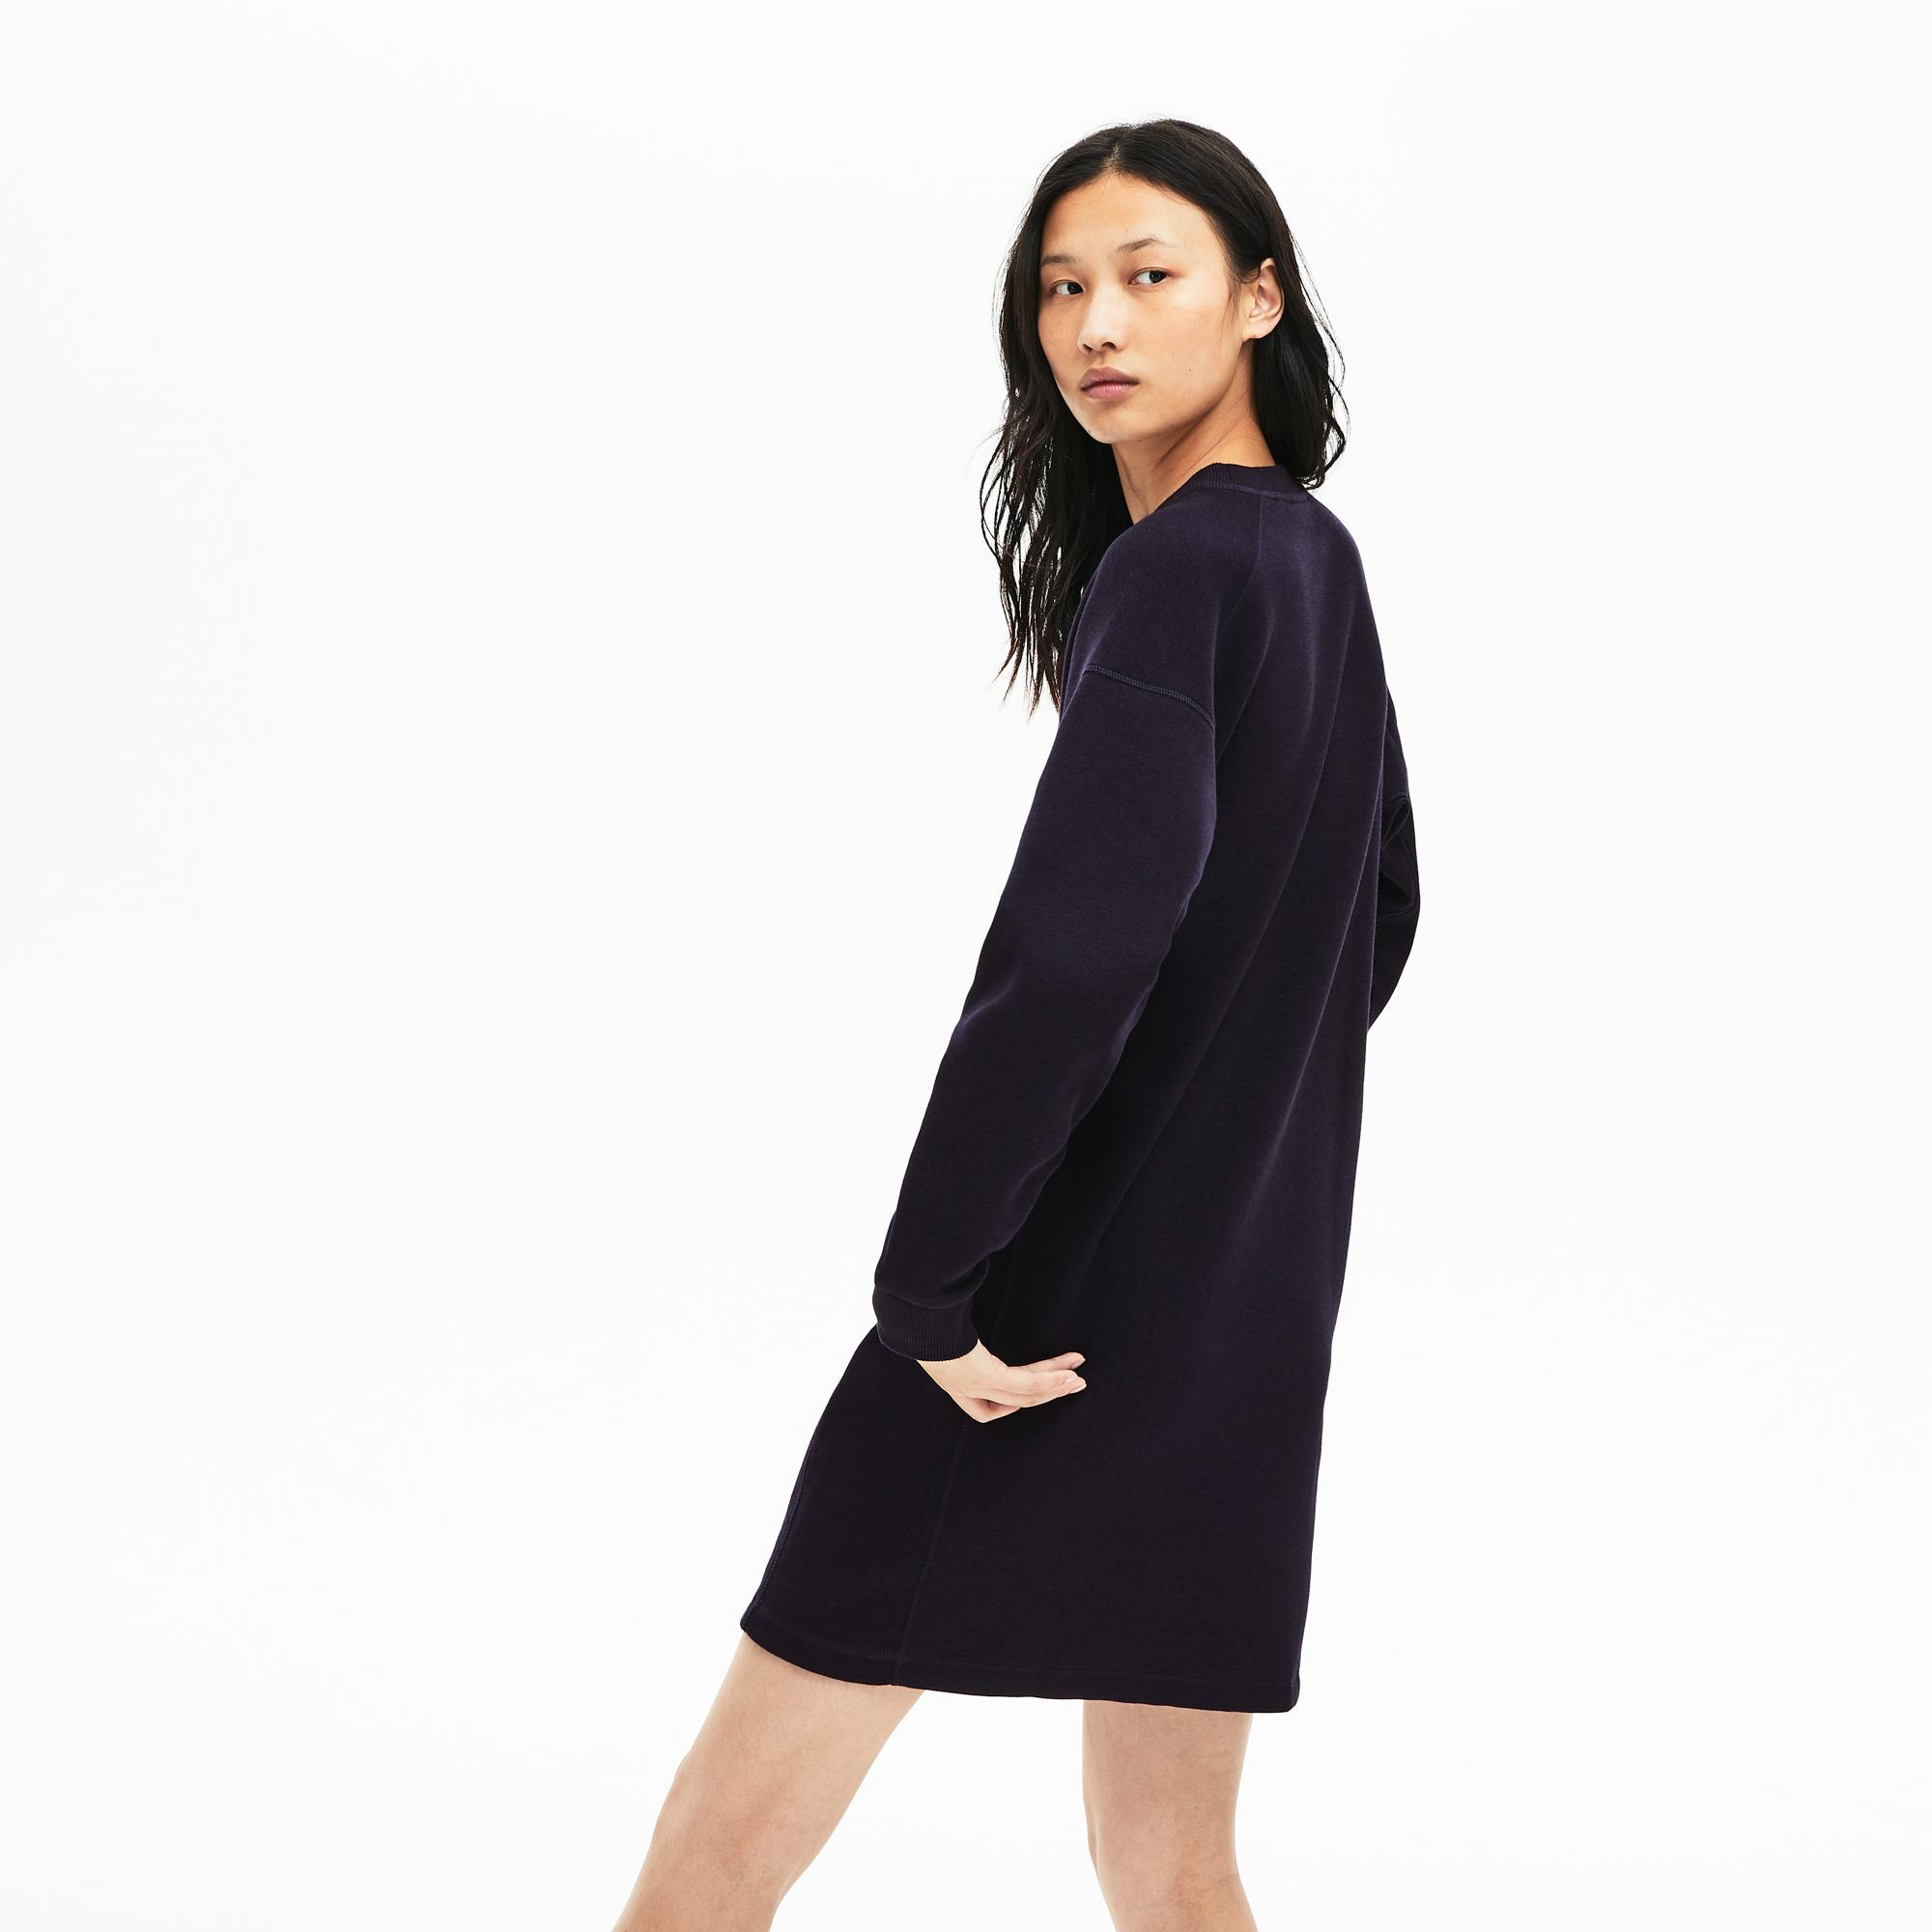 Lacoste Women's Motion Ribbed Panels Two-Ply Sweatshirt Dress